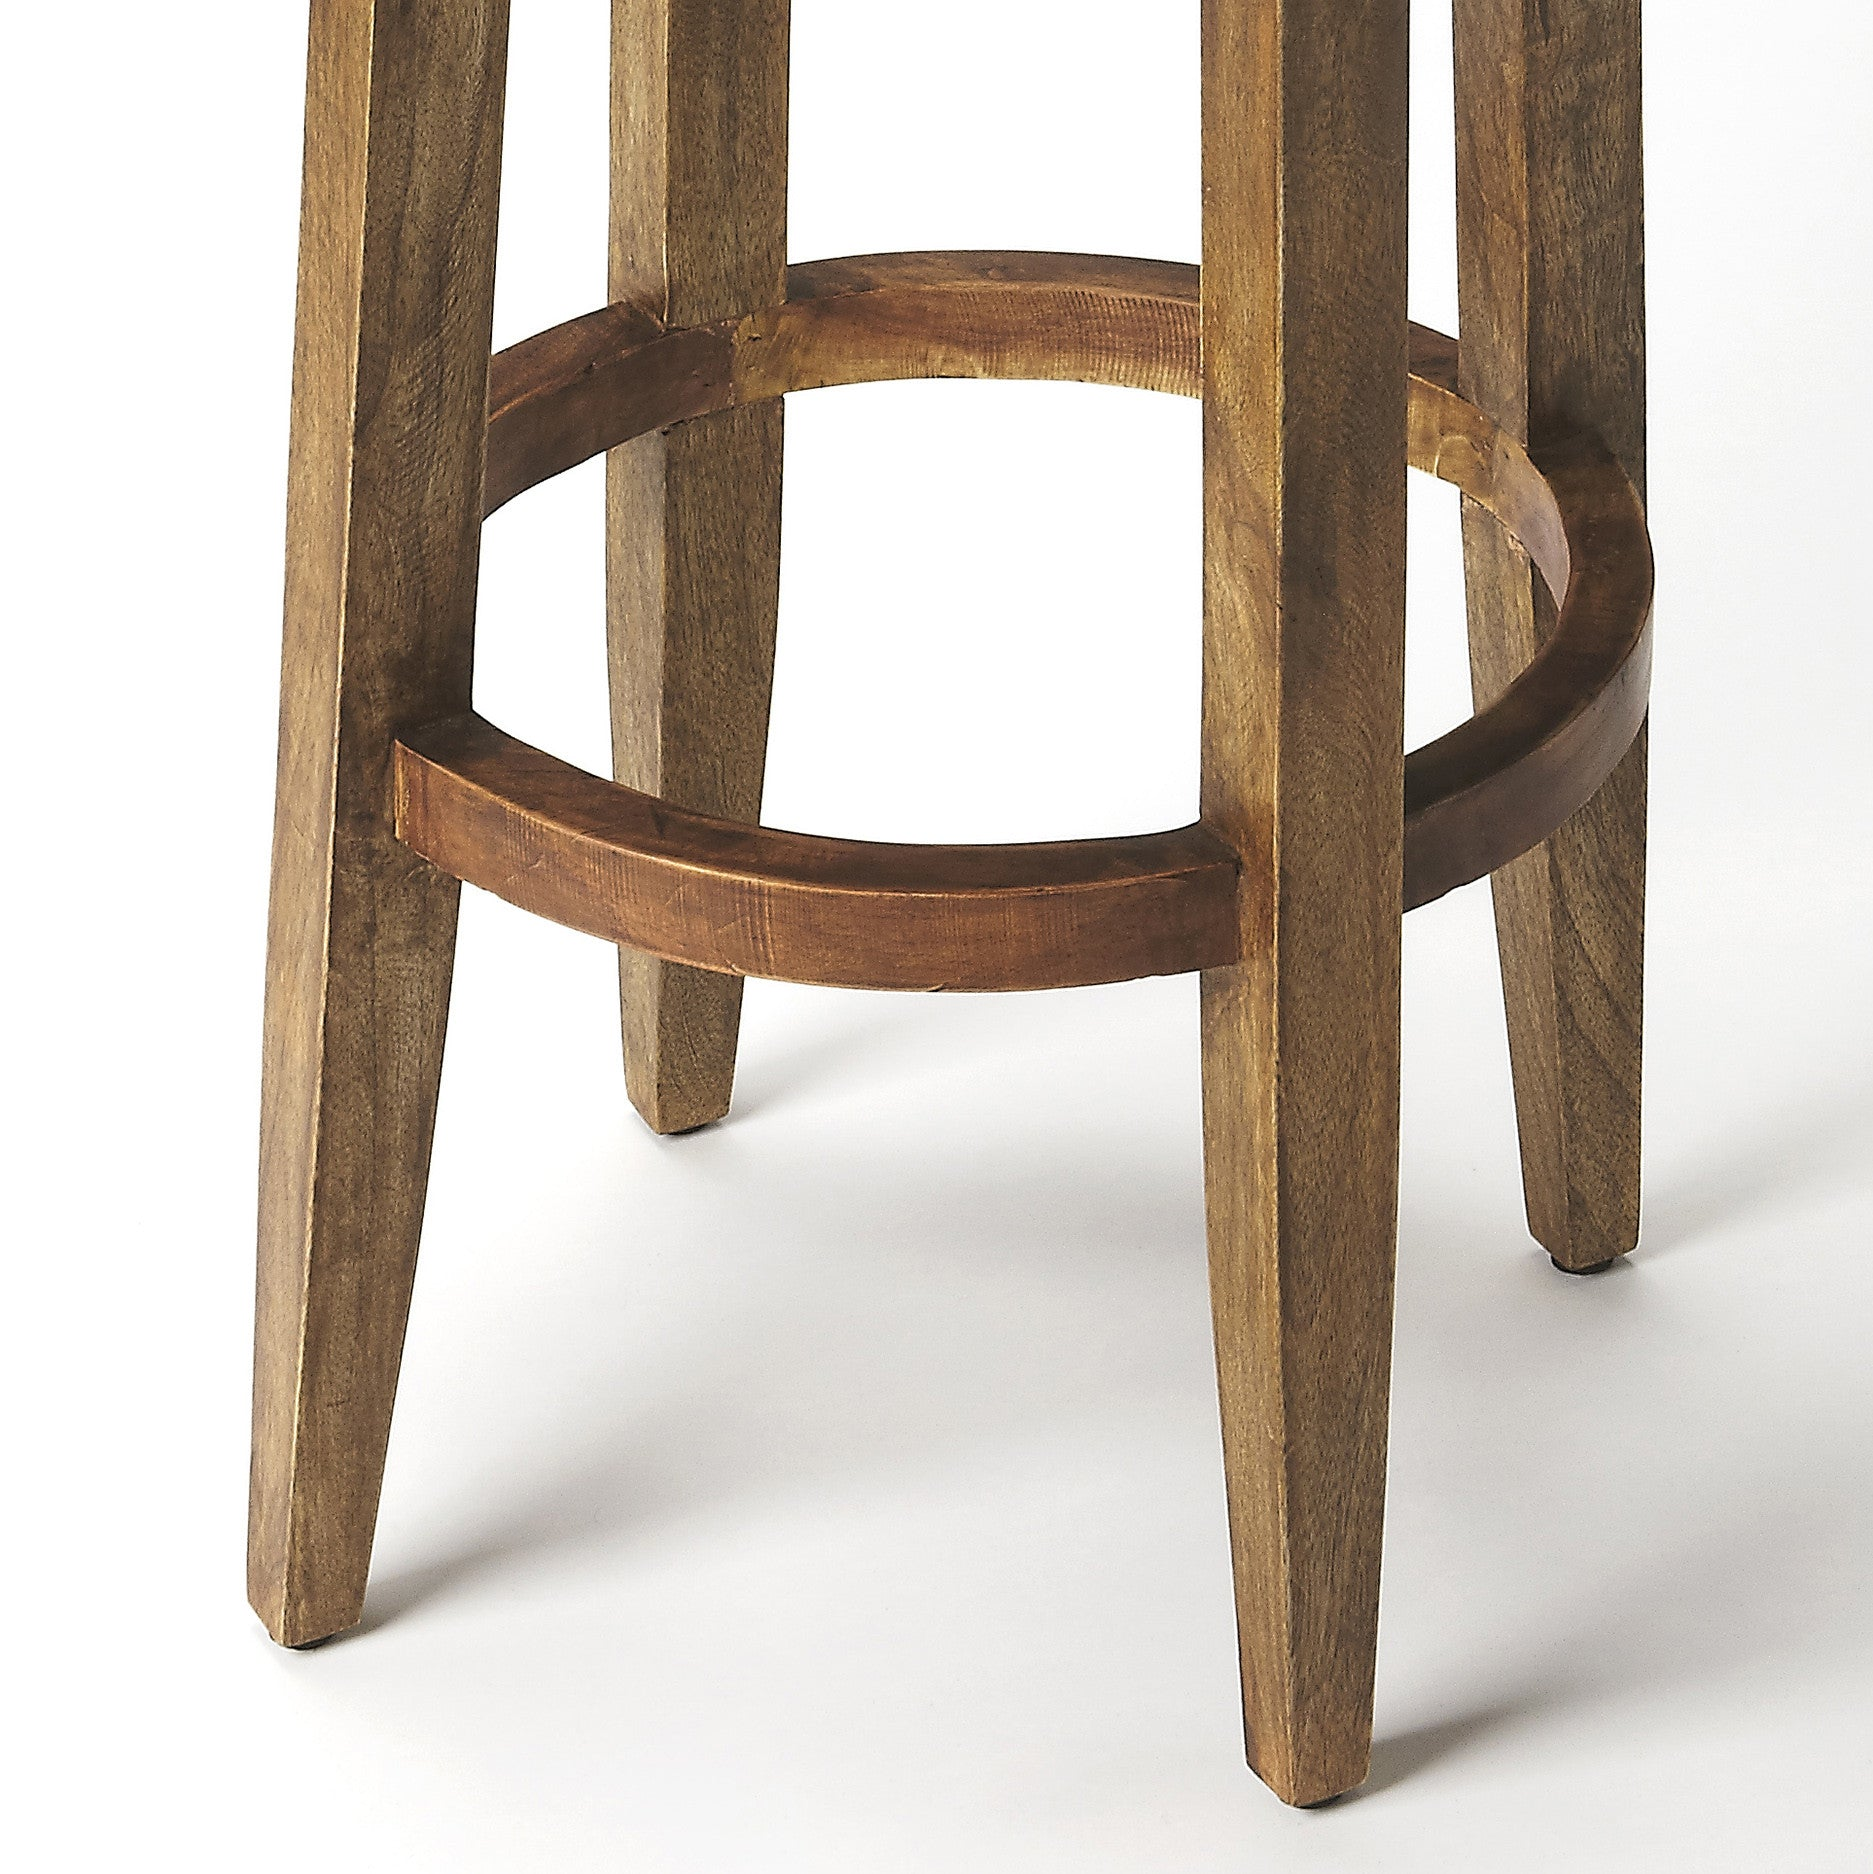 Rustic industrial modern wood and leather bar stool for Rustic industrial